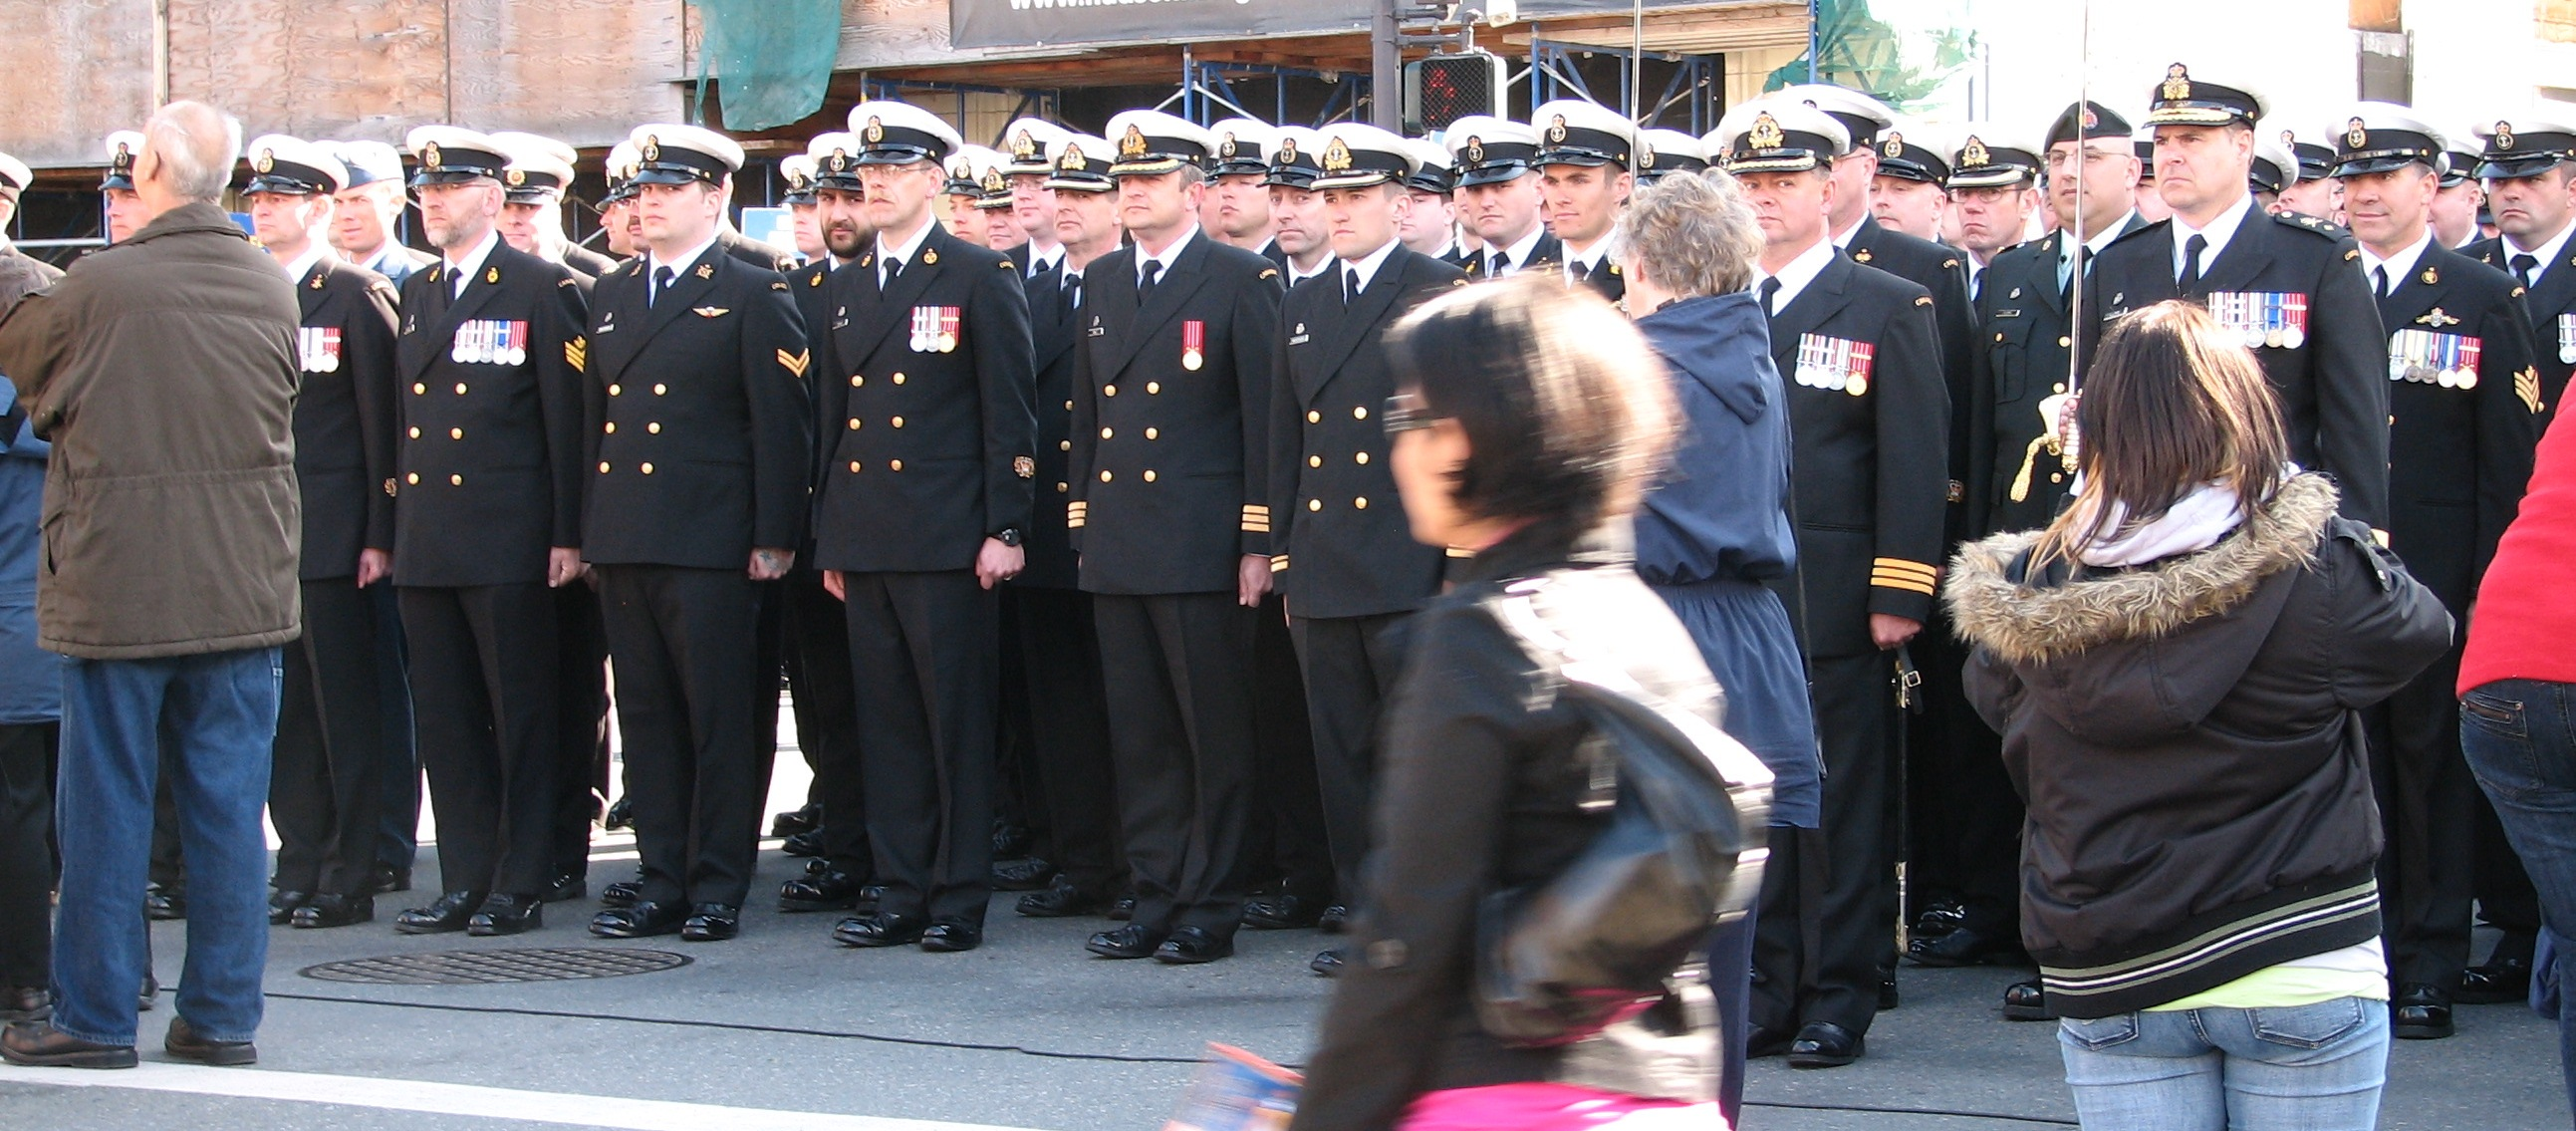 Navy Uniforms For Men Below: our own canadian navy